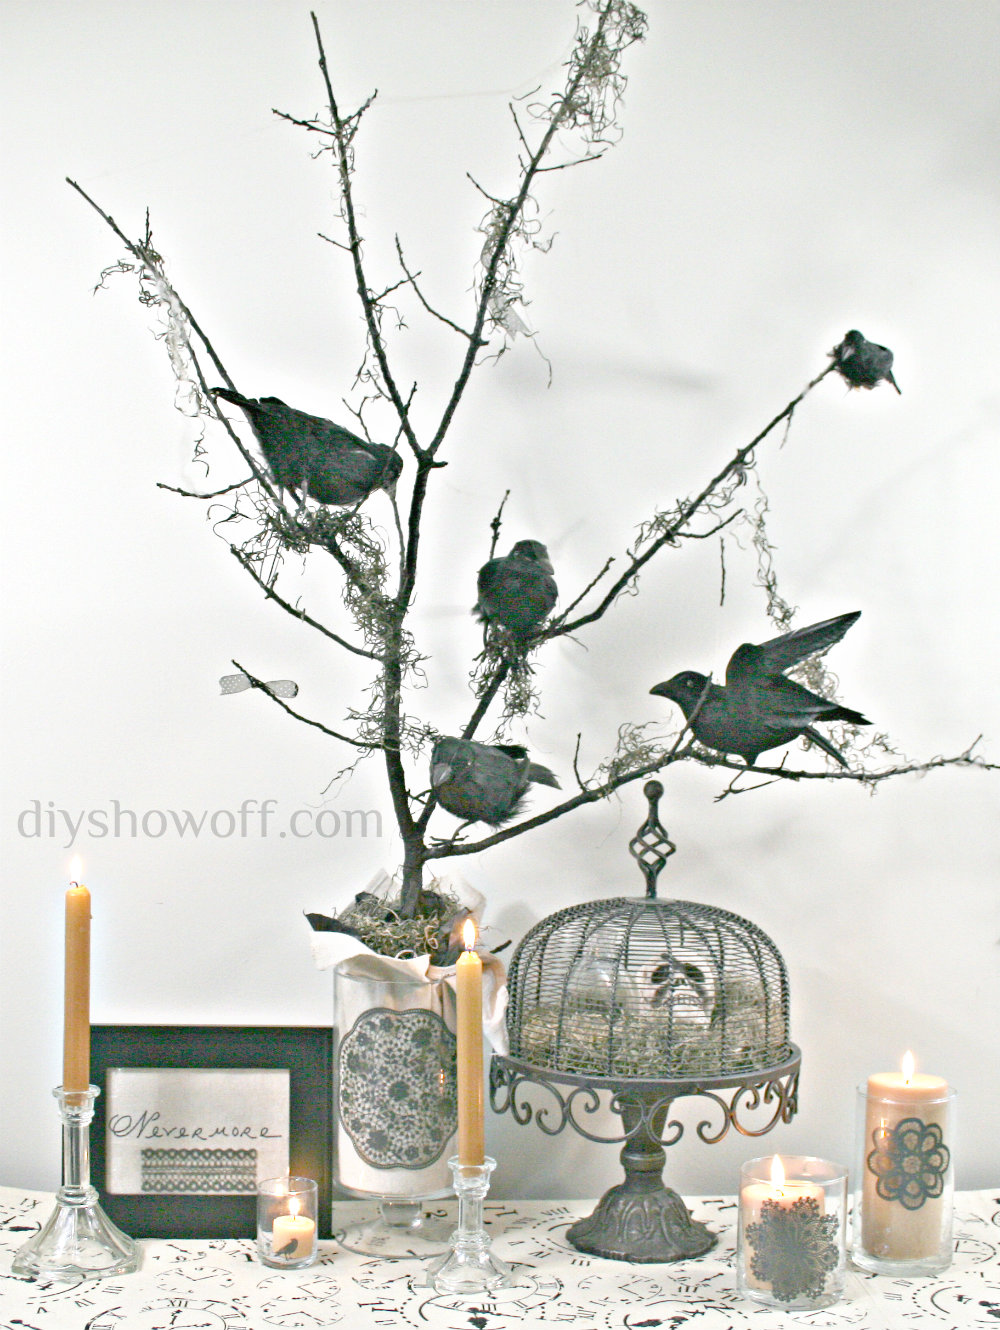 Diy halloween nevermore tree decordiy show off diy decorating diy halloween nevermore tree solutioingenieria